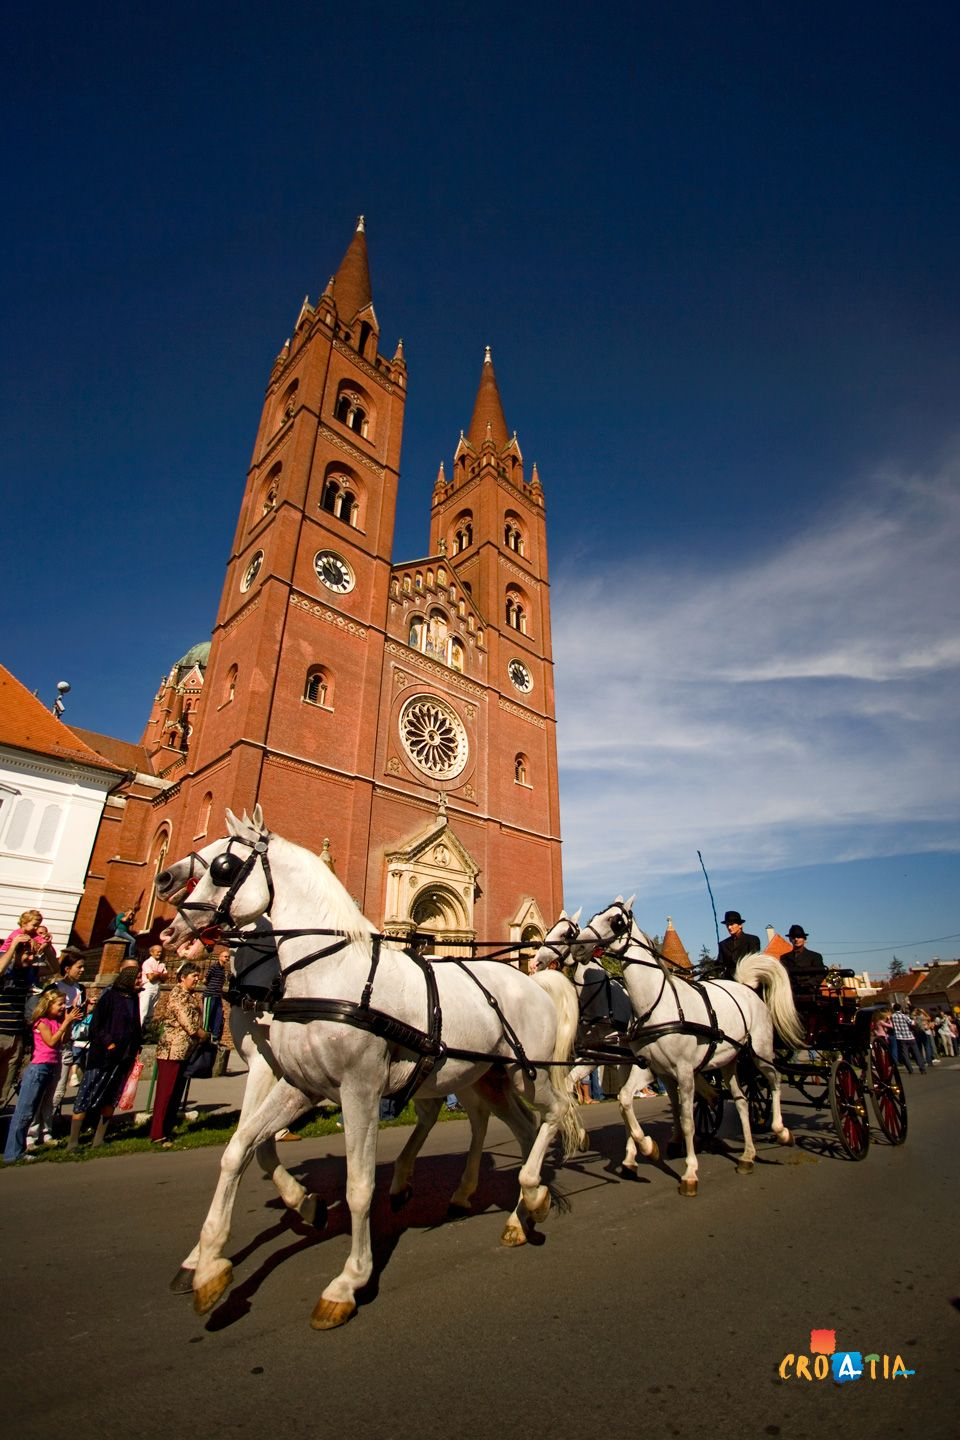 The largest sacral building in Slavonia is the cathedral in Đakovo, dedicated to St. Peter, and described by Pope John XXIII as the most beautiful church between Venice and Tsargrad. The festival of Đakovo Embroidery and the Midsummer Night Bonfire, as well as the stud farm of the famous Lipizzaner horse make Đakovo unique in Slavonia.